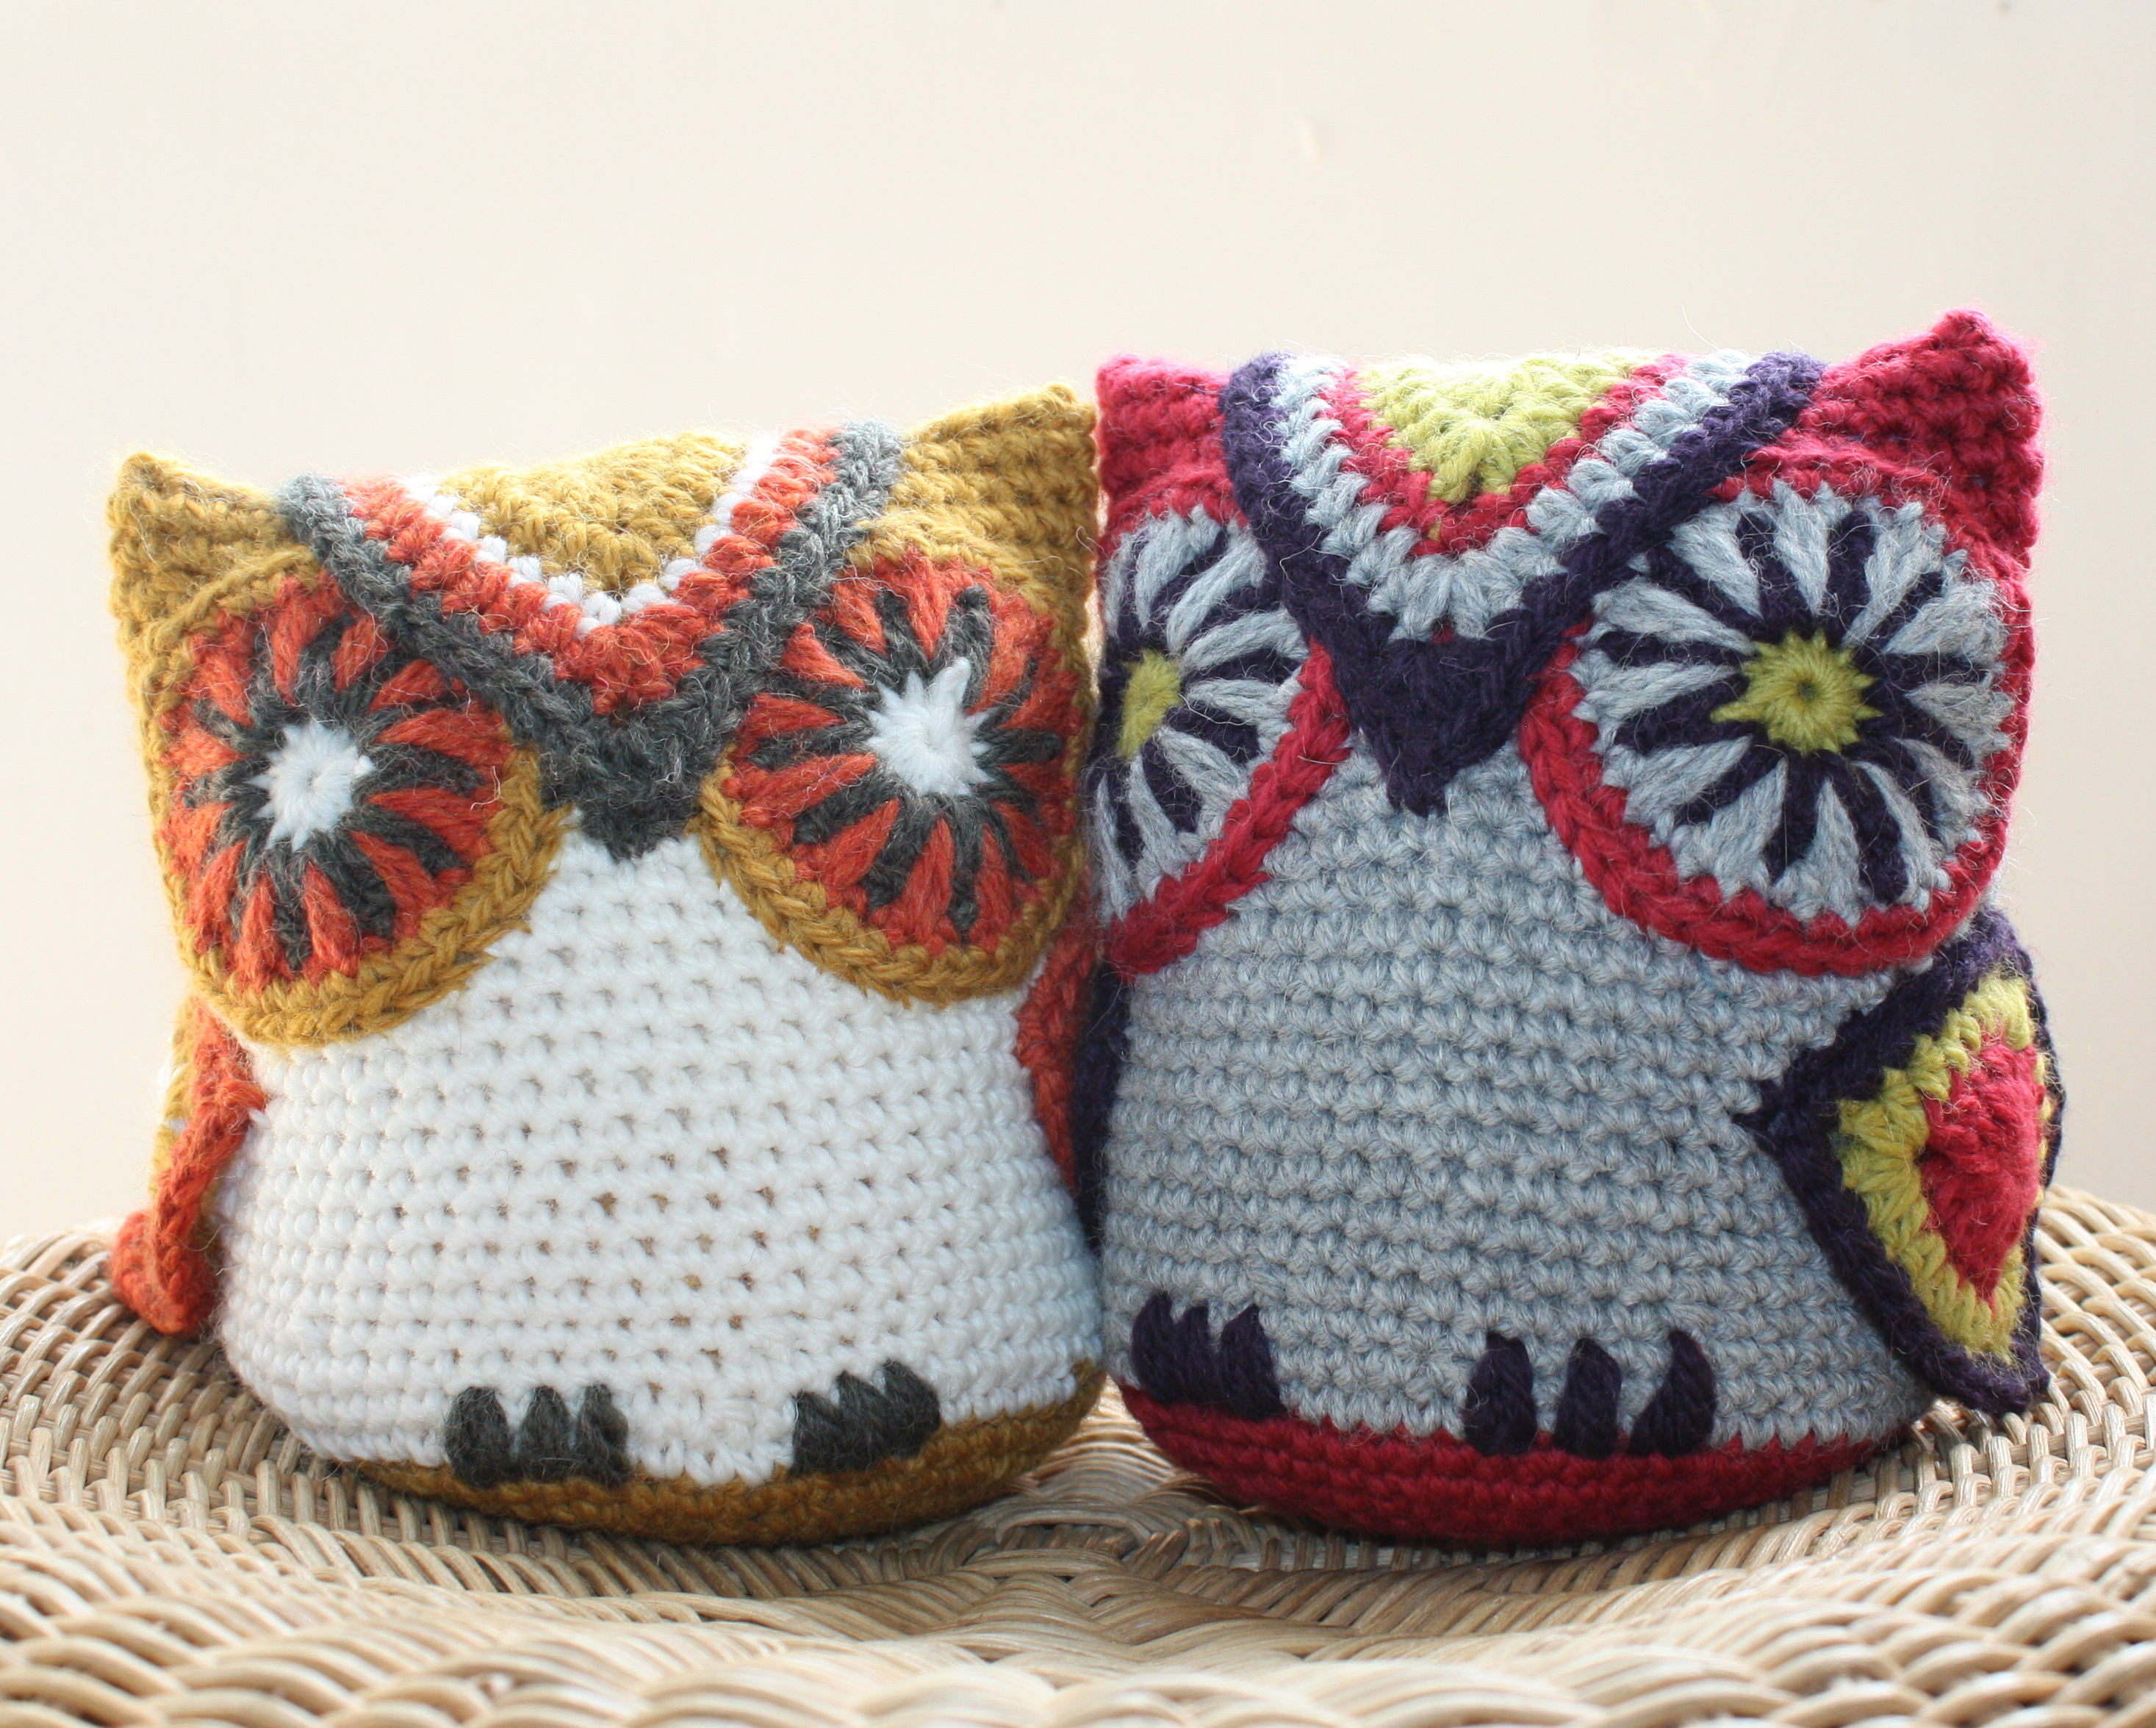 Owl Door Stop Riverhouse Hookers 5 Week Crochet Project